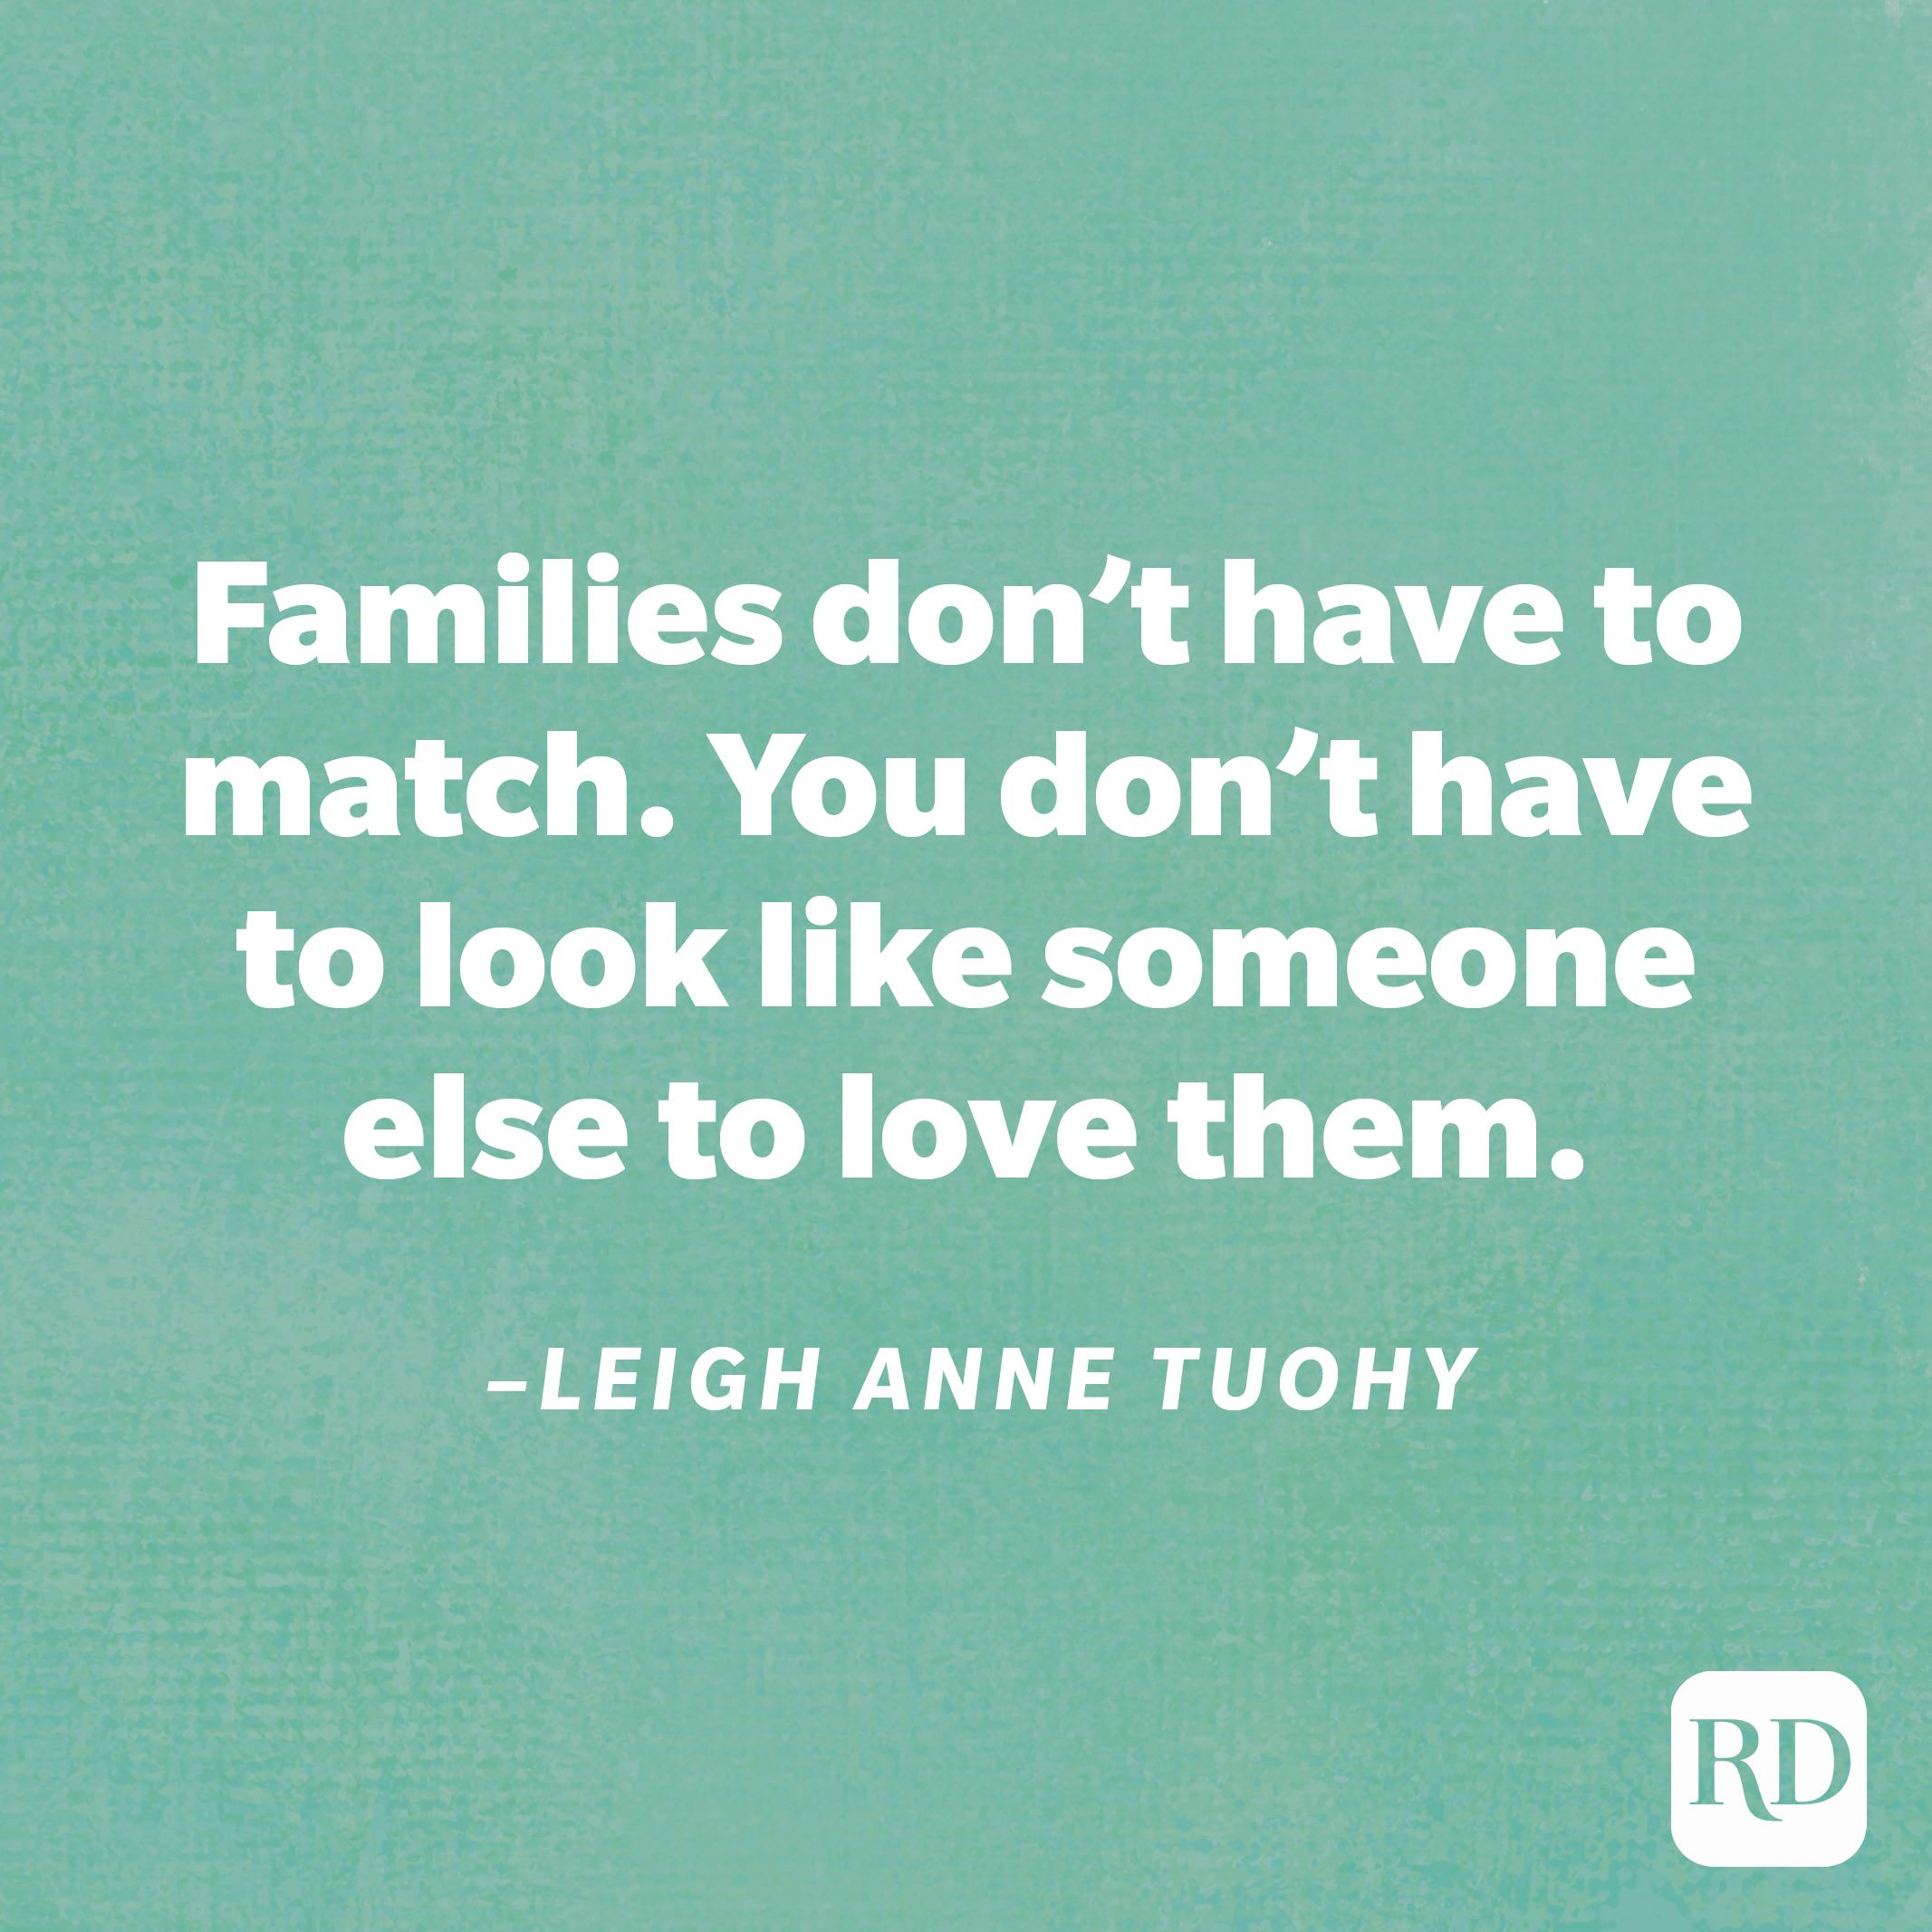 """""""Families don't have to match. You don't have to look like someone else to love them.""""—Leigh Anne Tuohy"""